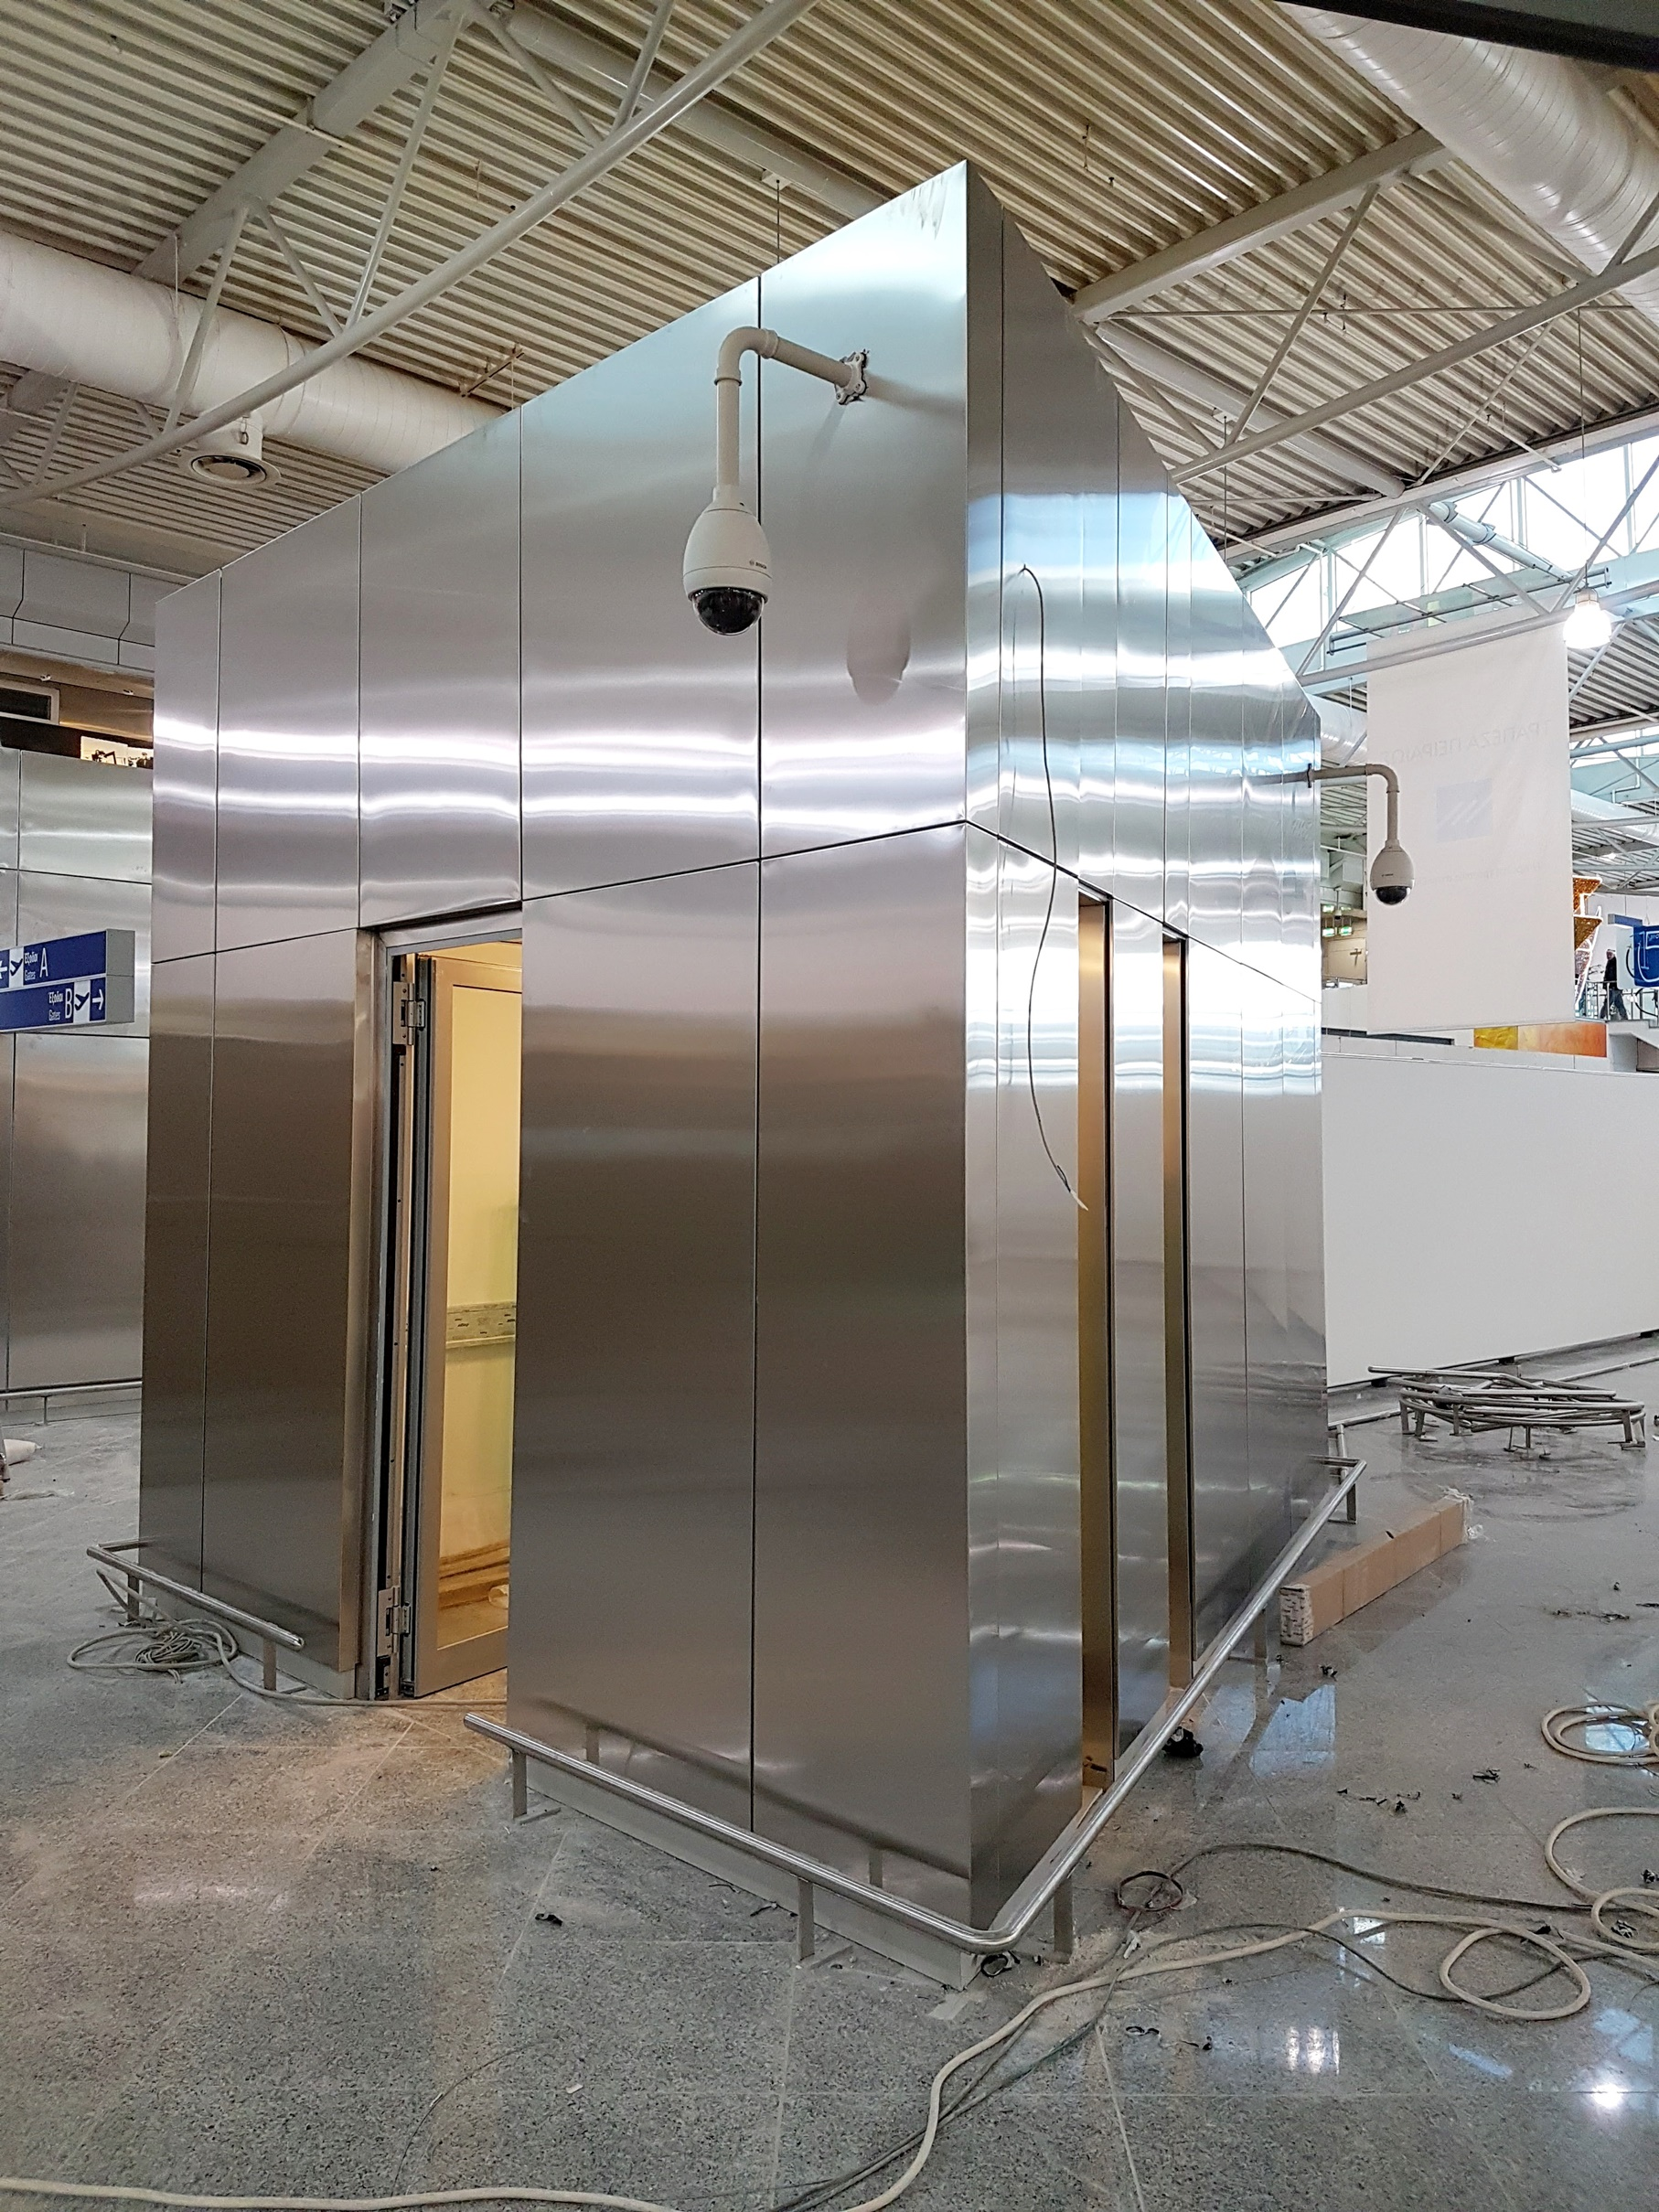 stavrianos_stainless_steel_wall_cladding_panels_athens_airport